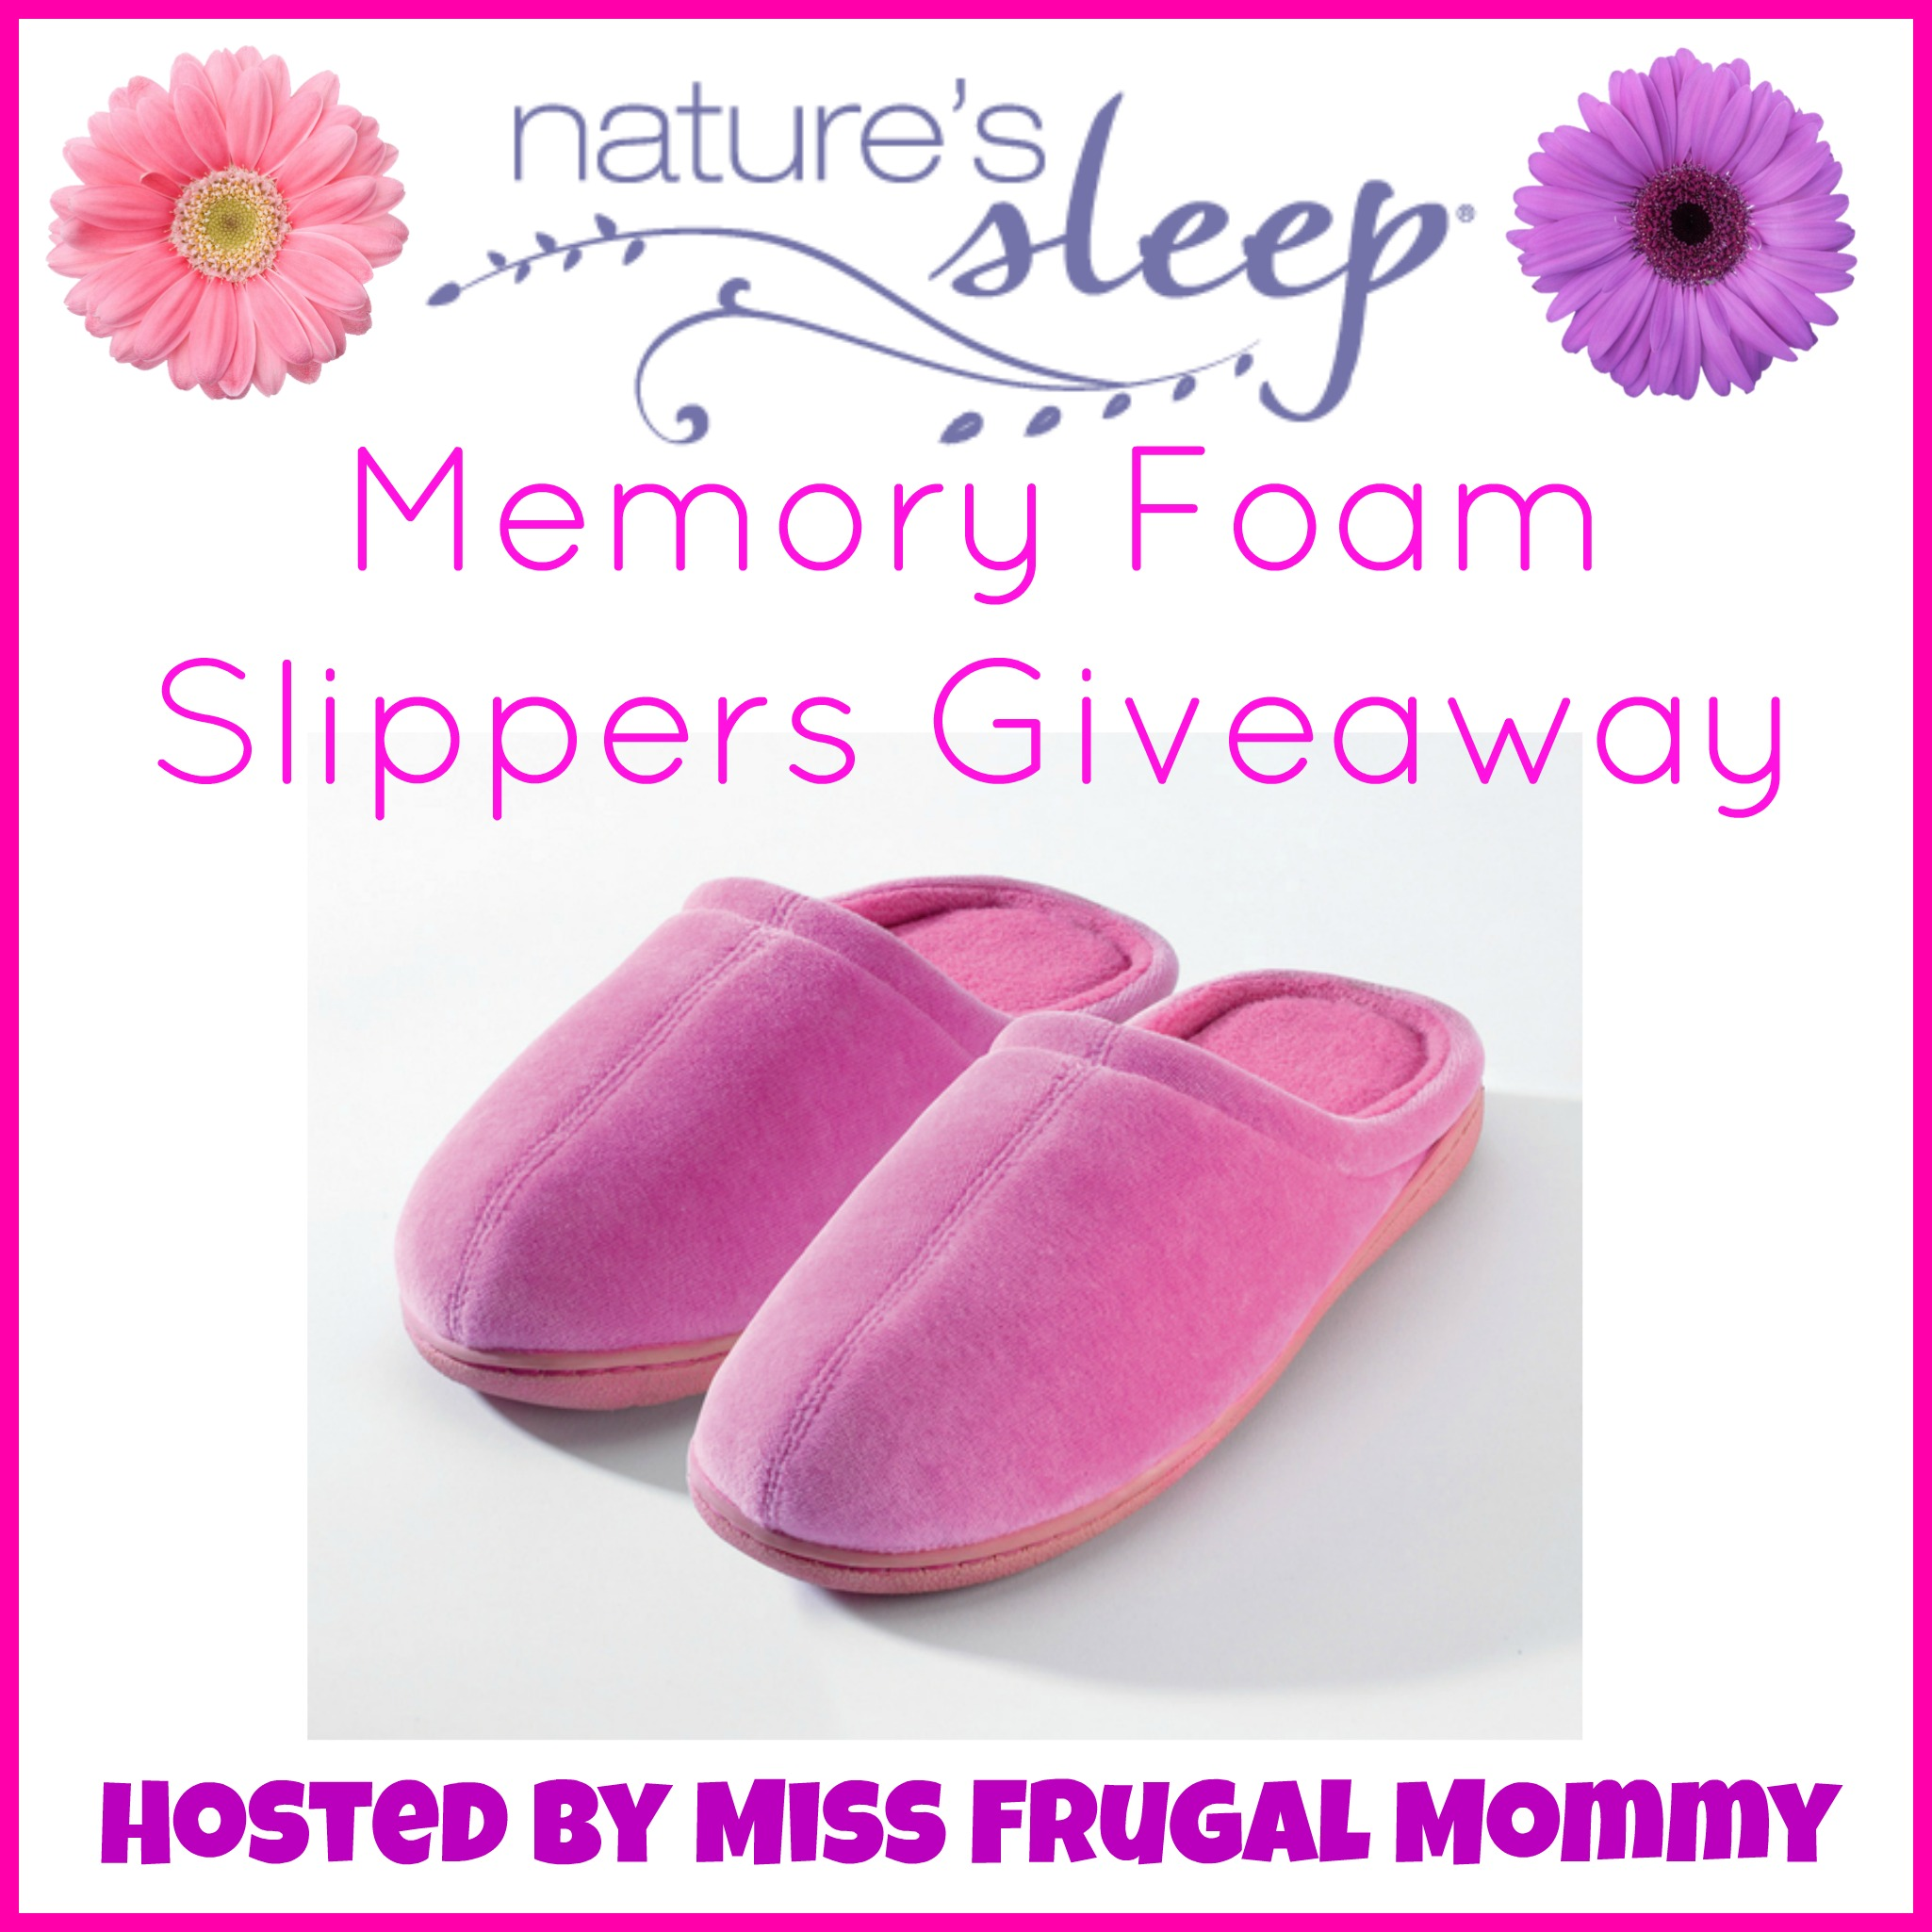 Enter the Nature's Sleep Slipper Giveaway. Ends 3/19.